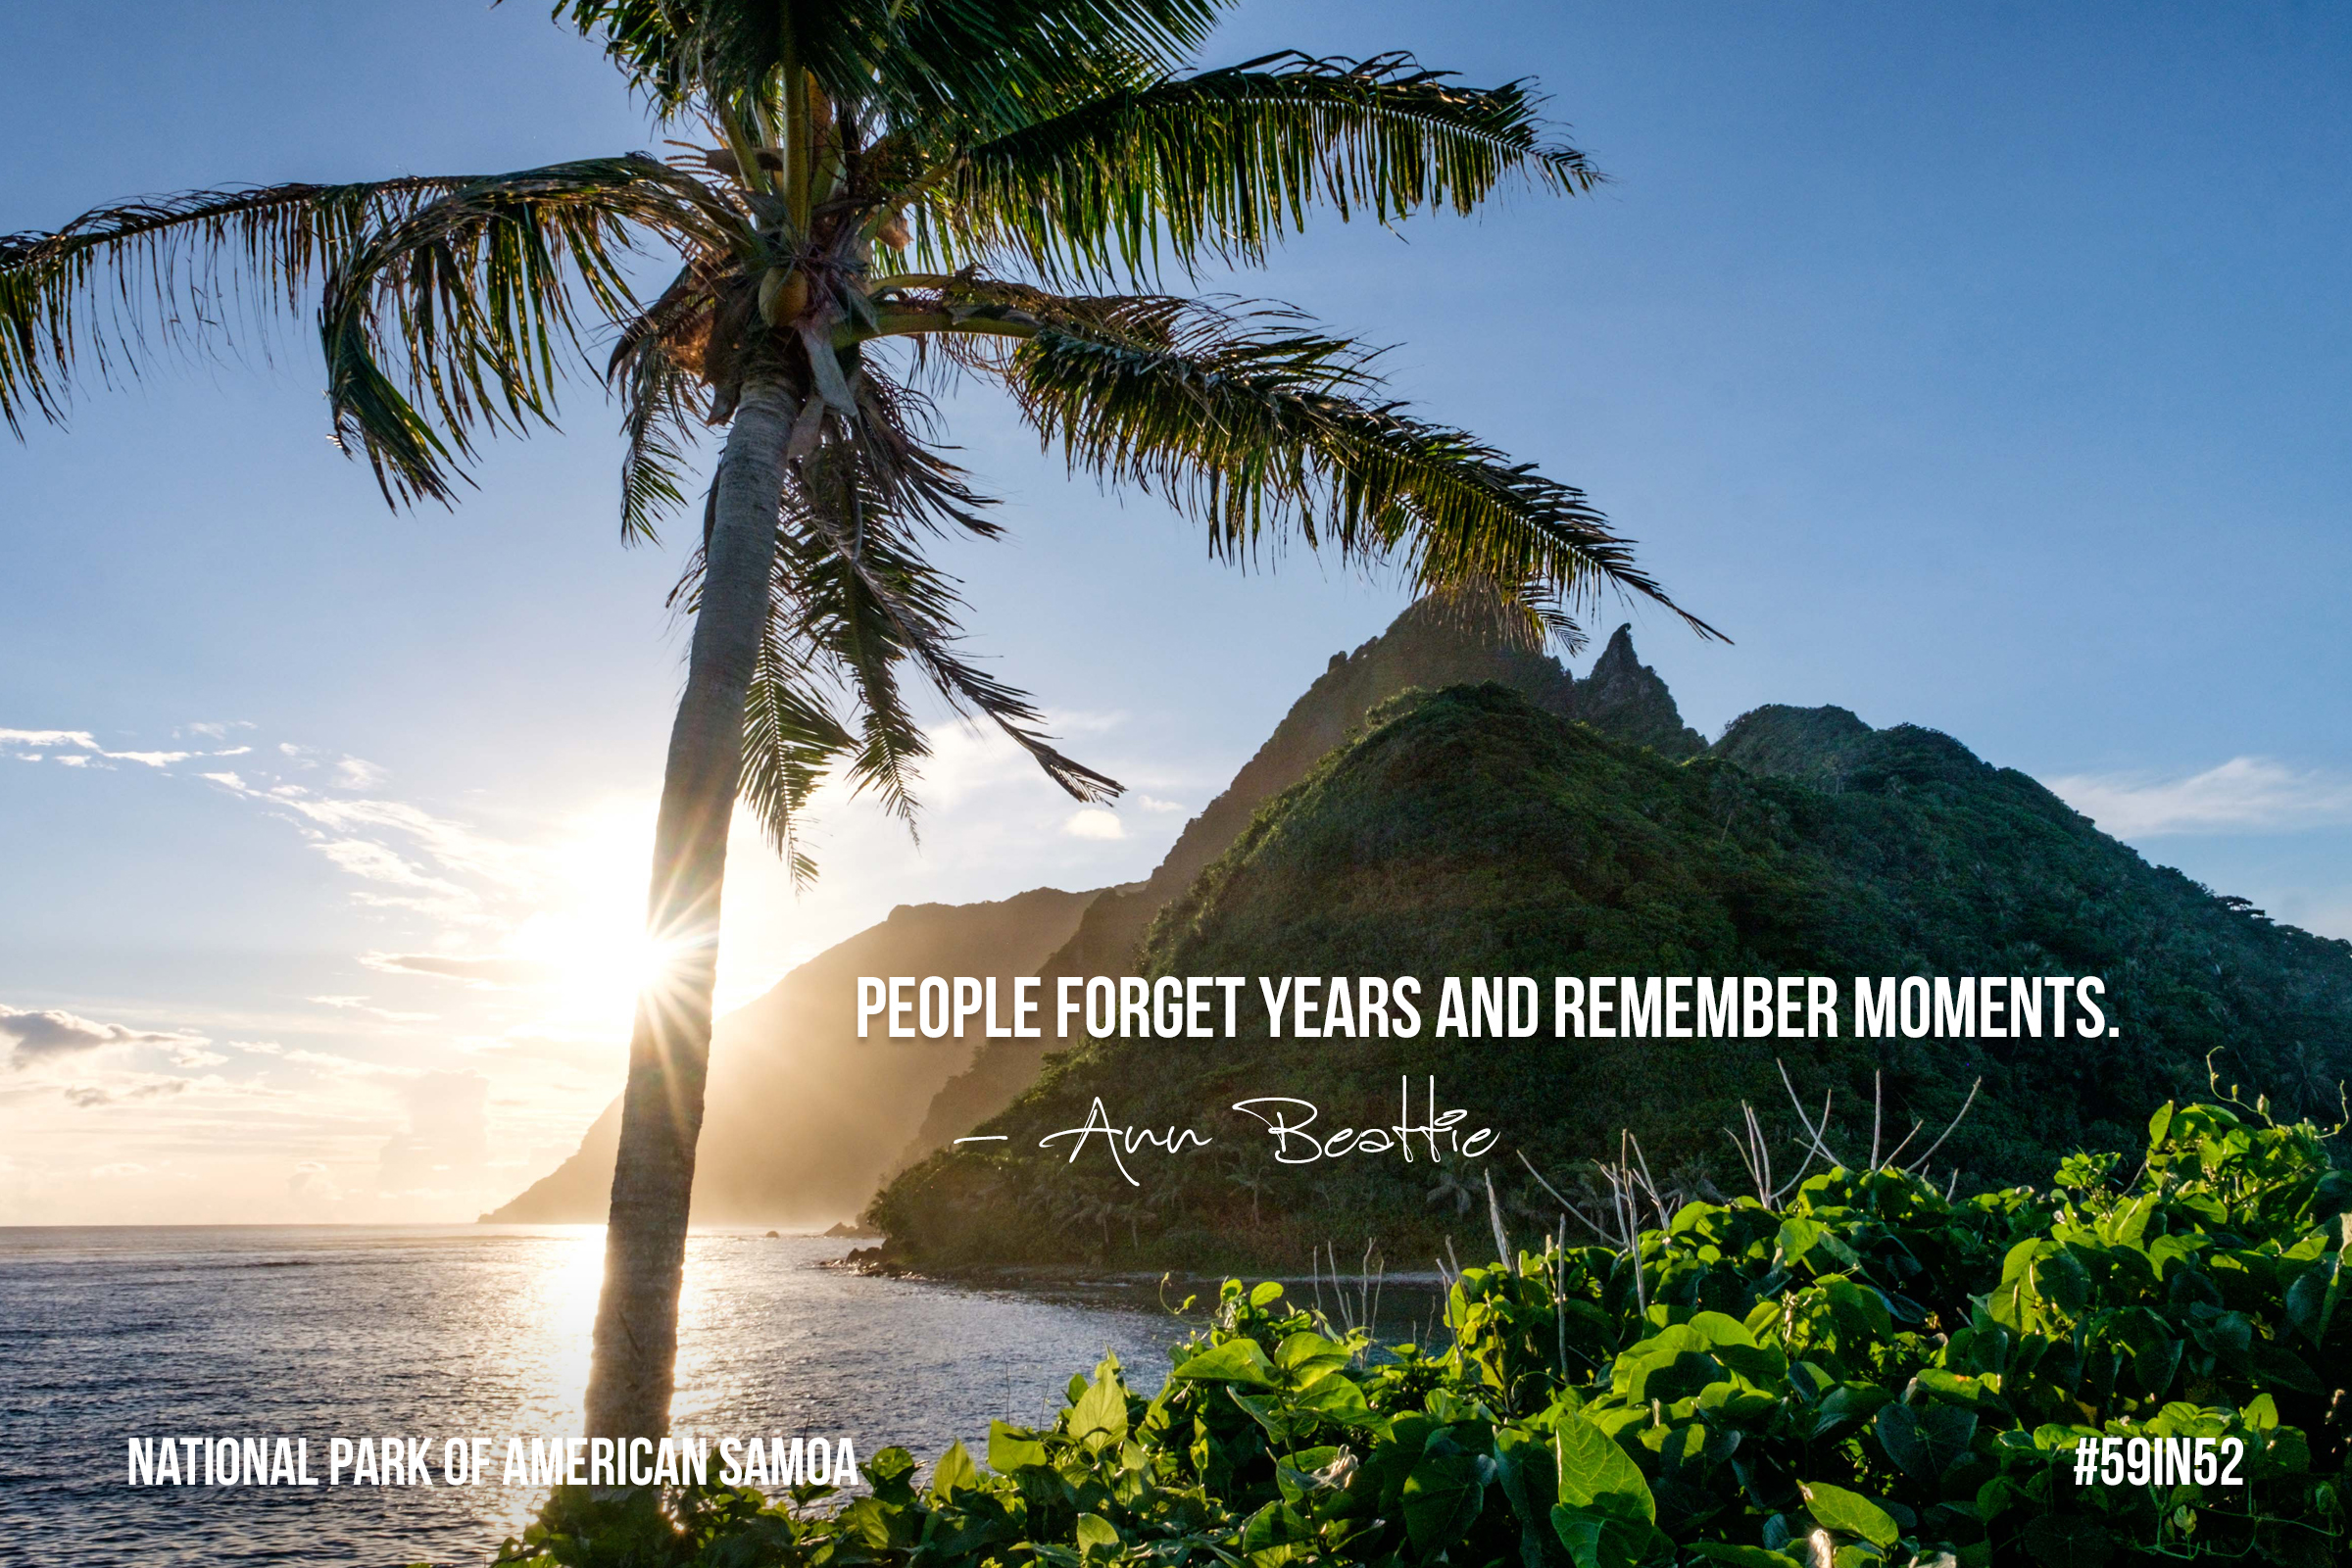 """People forget years and remember moments."" - Ann Beatte"